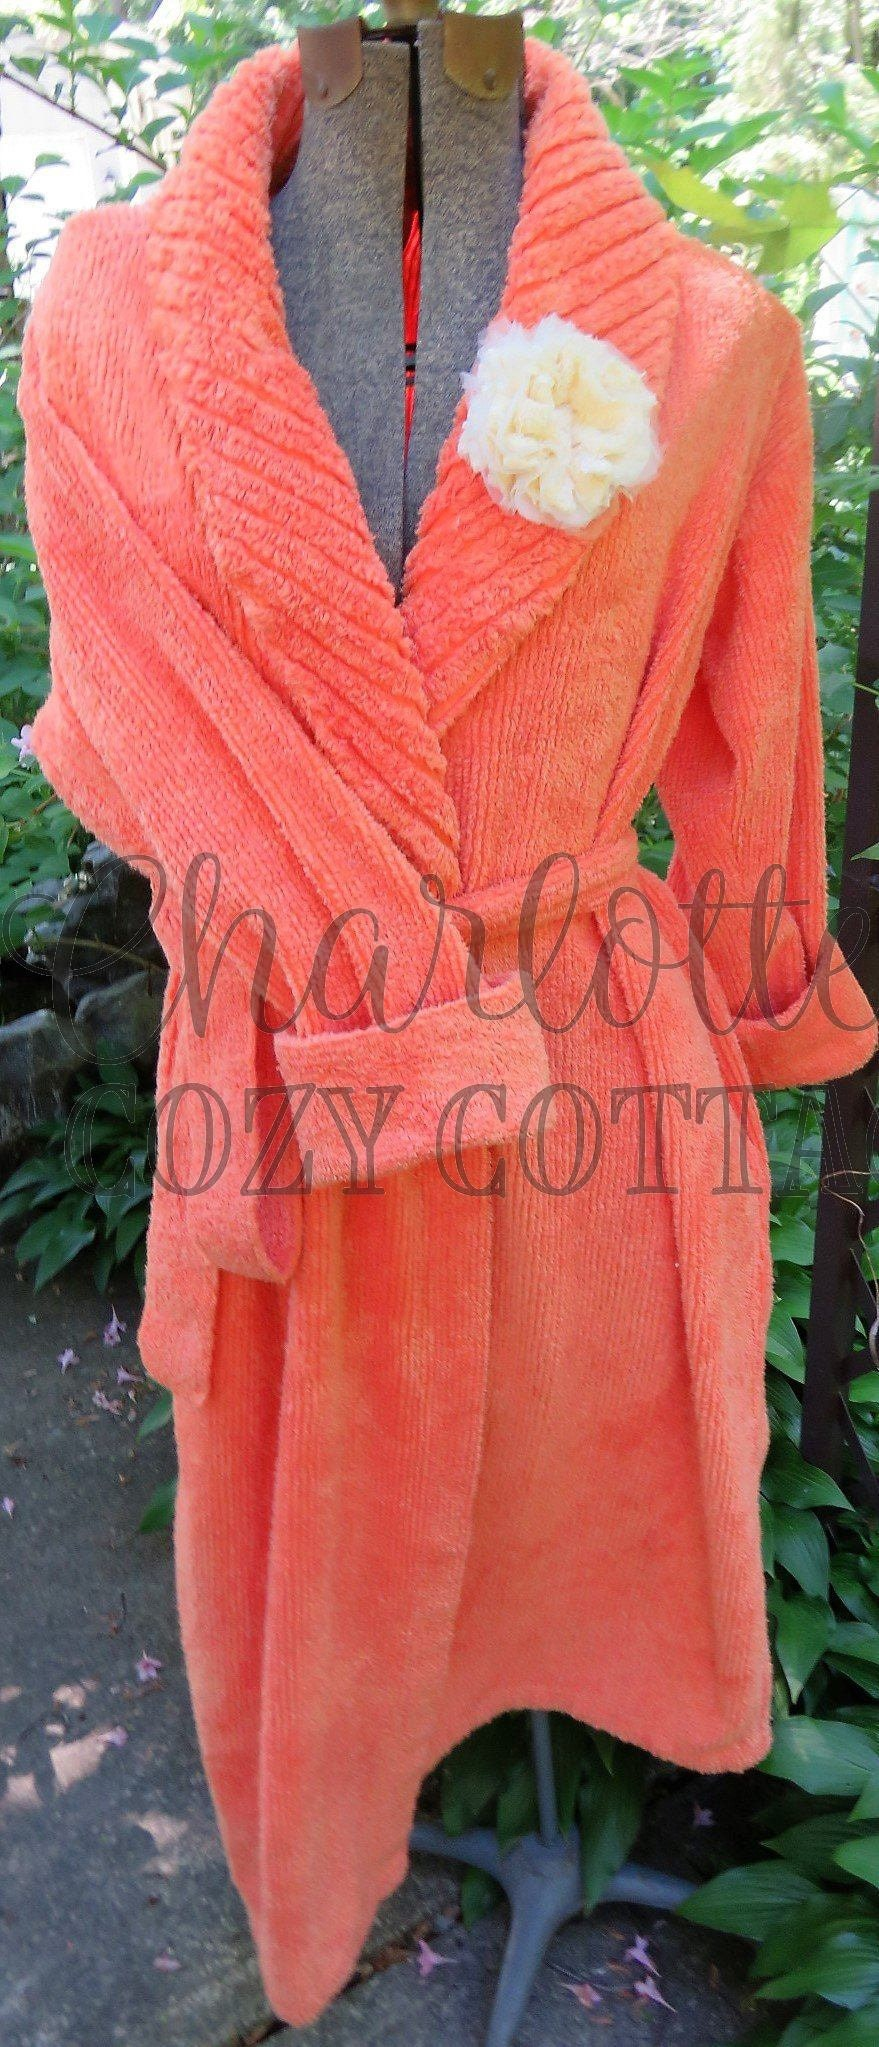 204770d4f0 Yummy Ripe Melon Vintage Chenille Robe Love the Summery